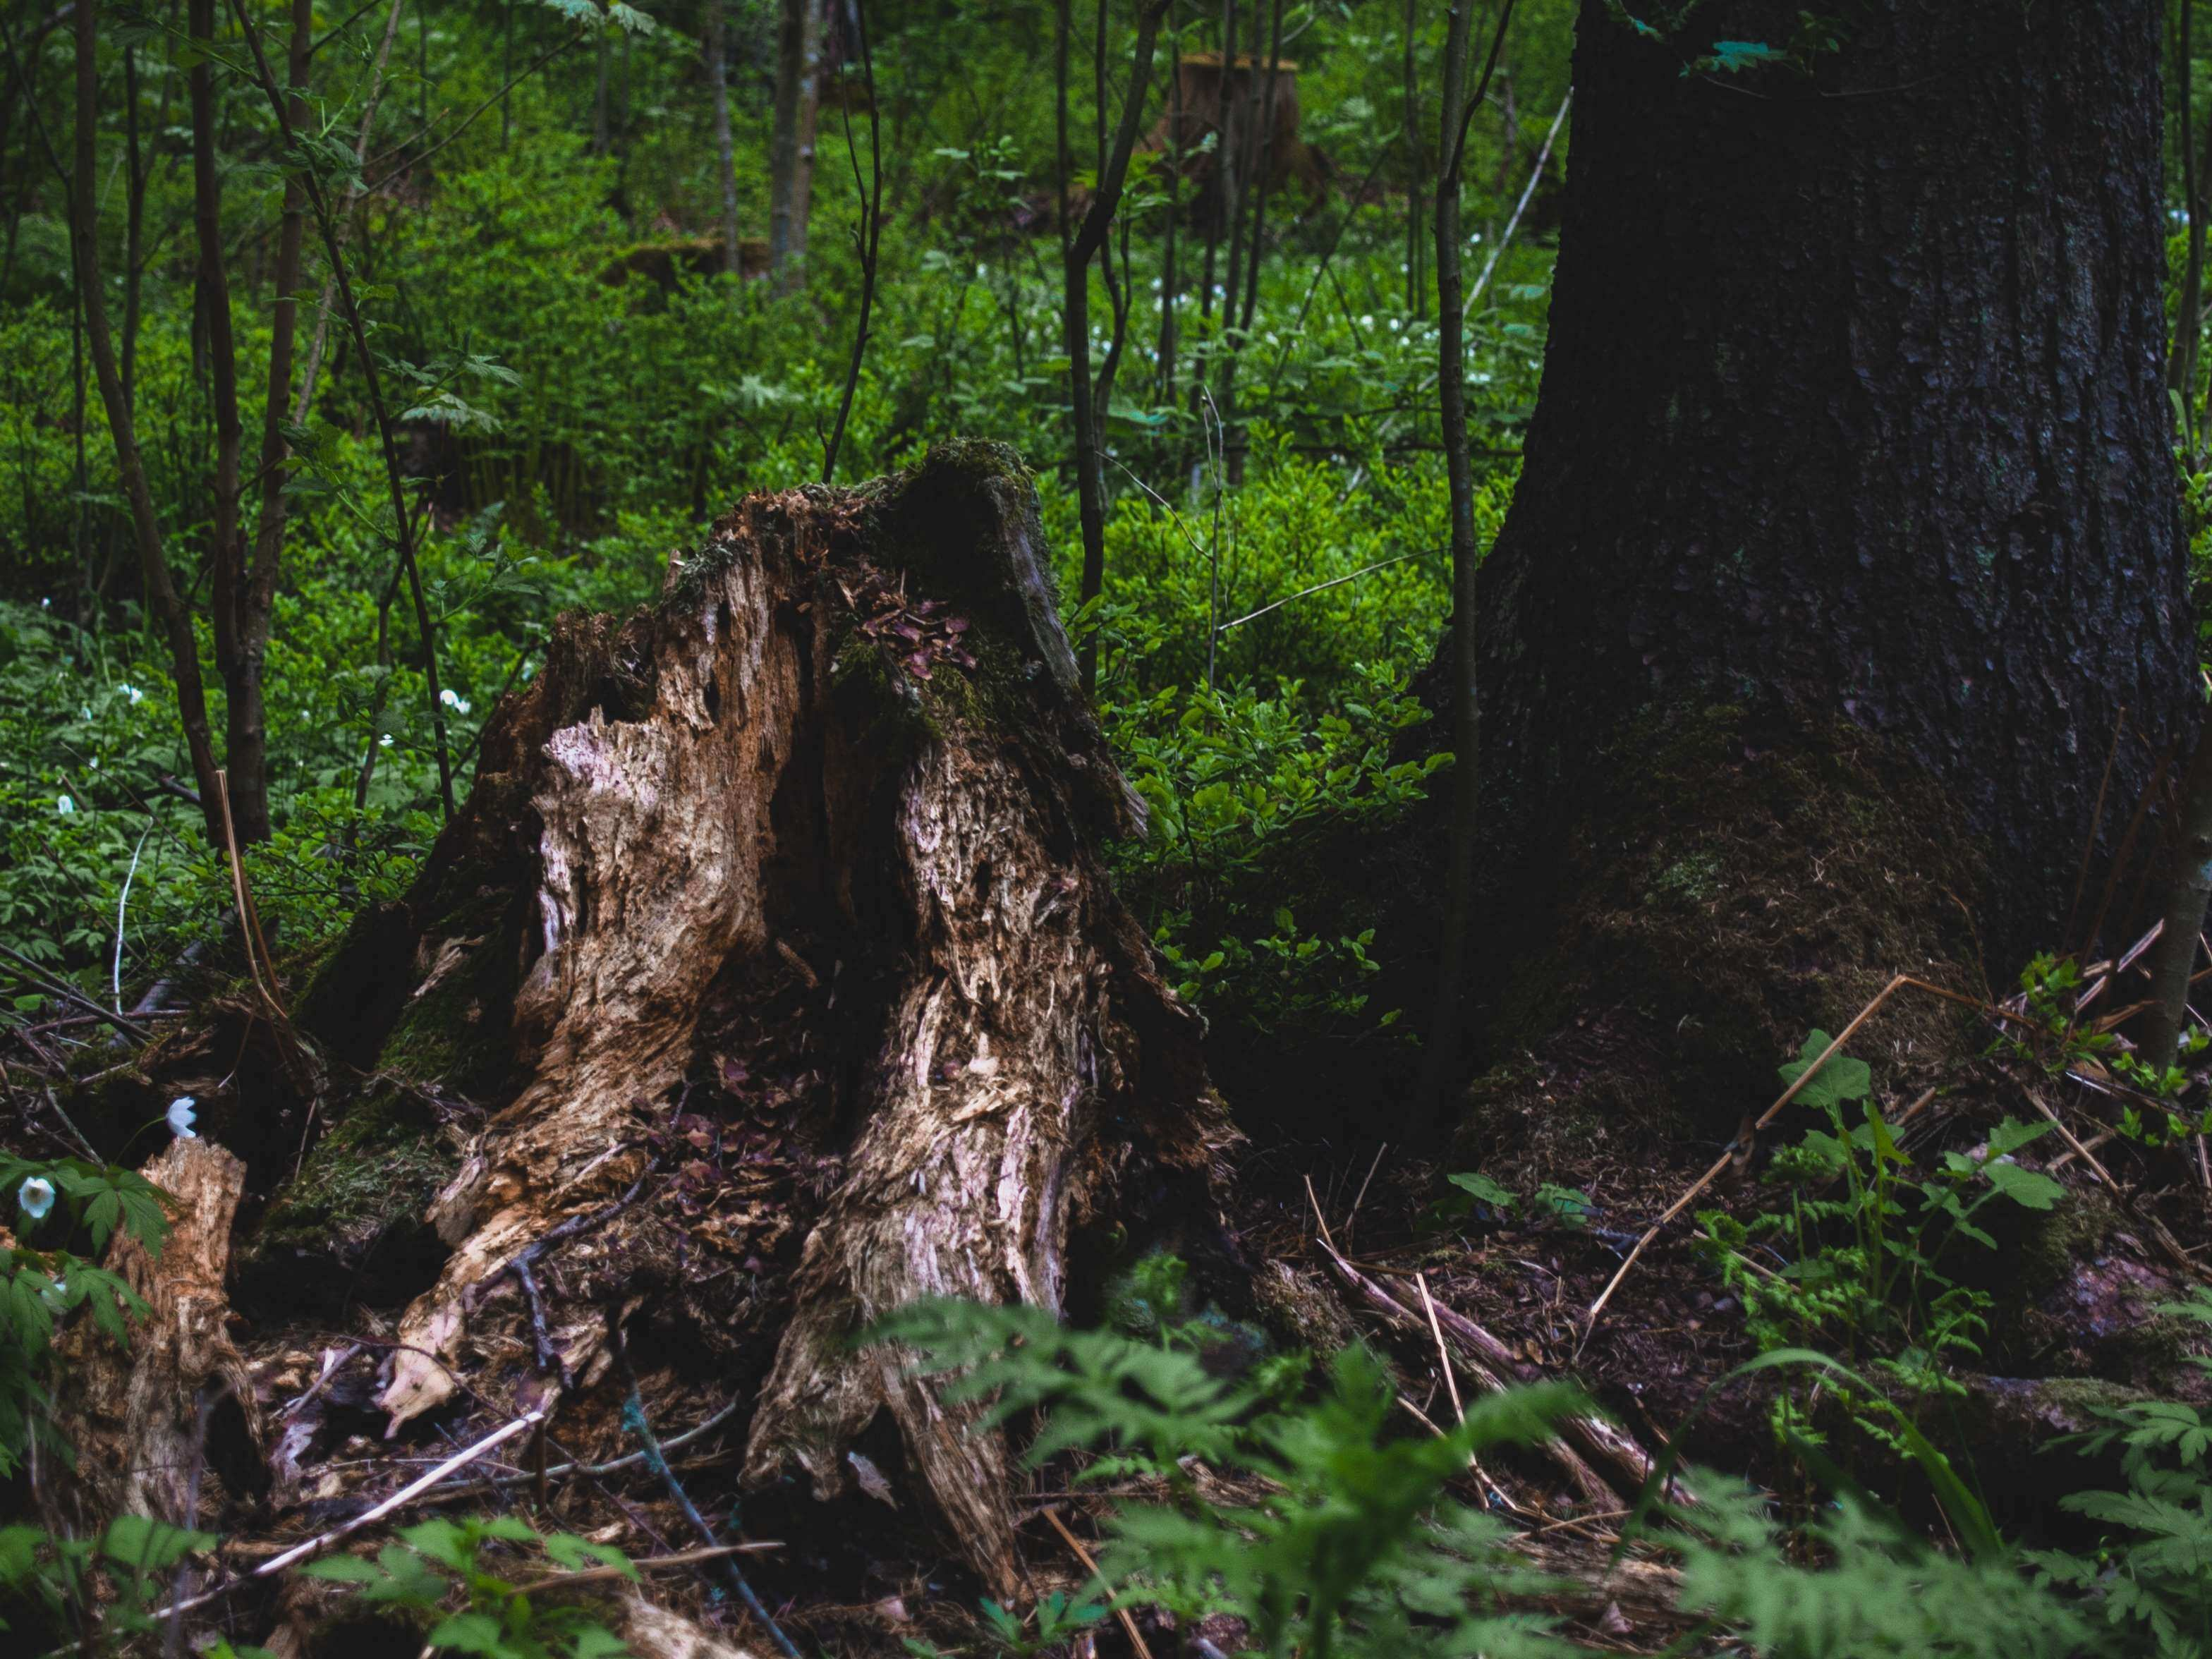 forest nature photography rot rotten stump tree stump woods